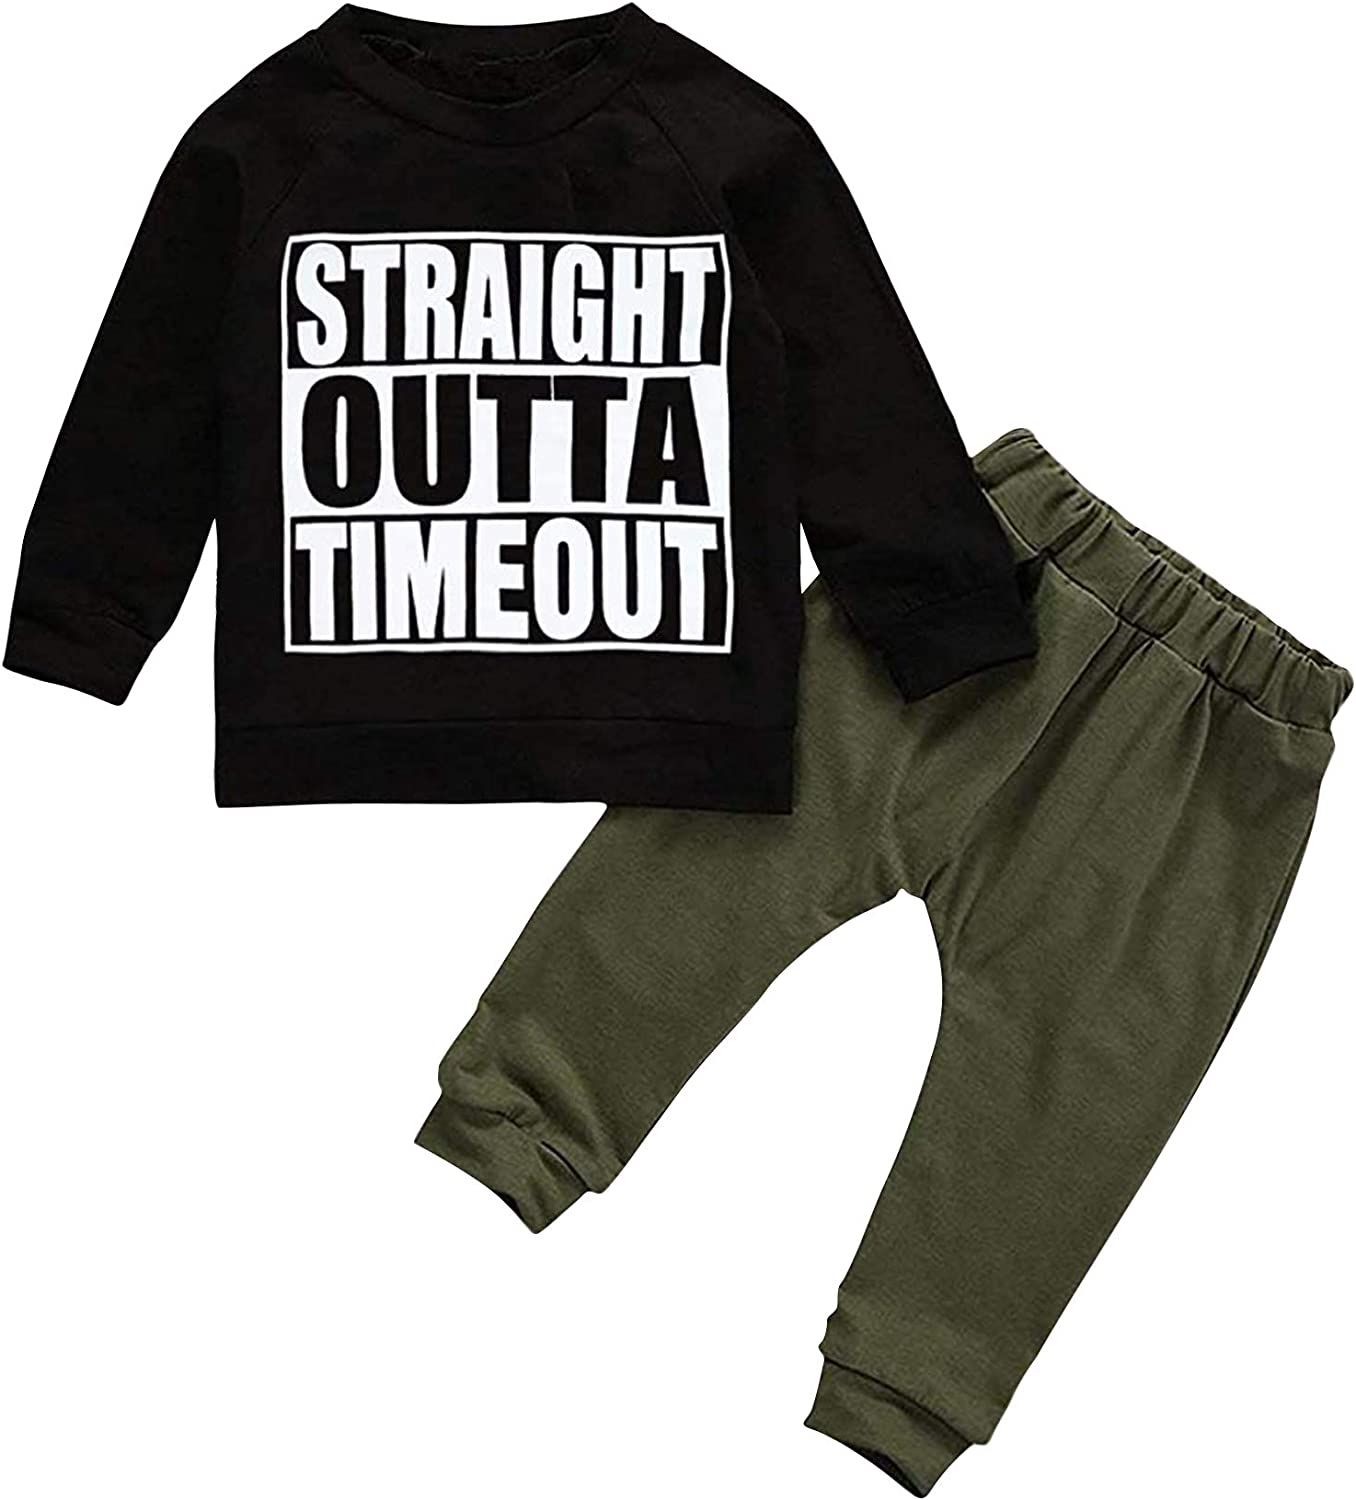 TUEMOS Toddler Boy Clothes Straight Outta Time Out Letter Sweatshirt Top + Camouflage Pants Outfit Set